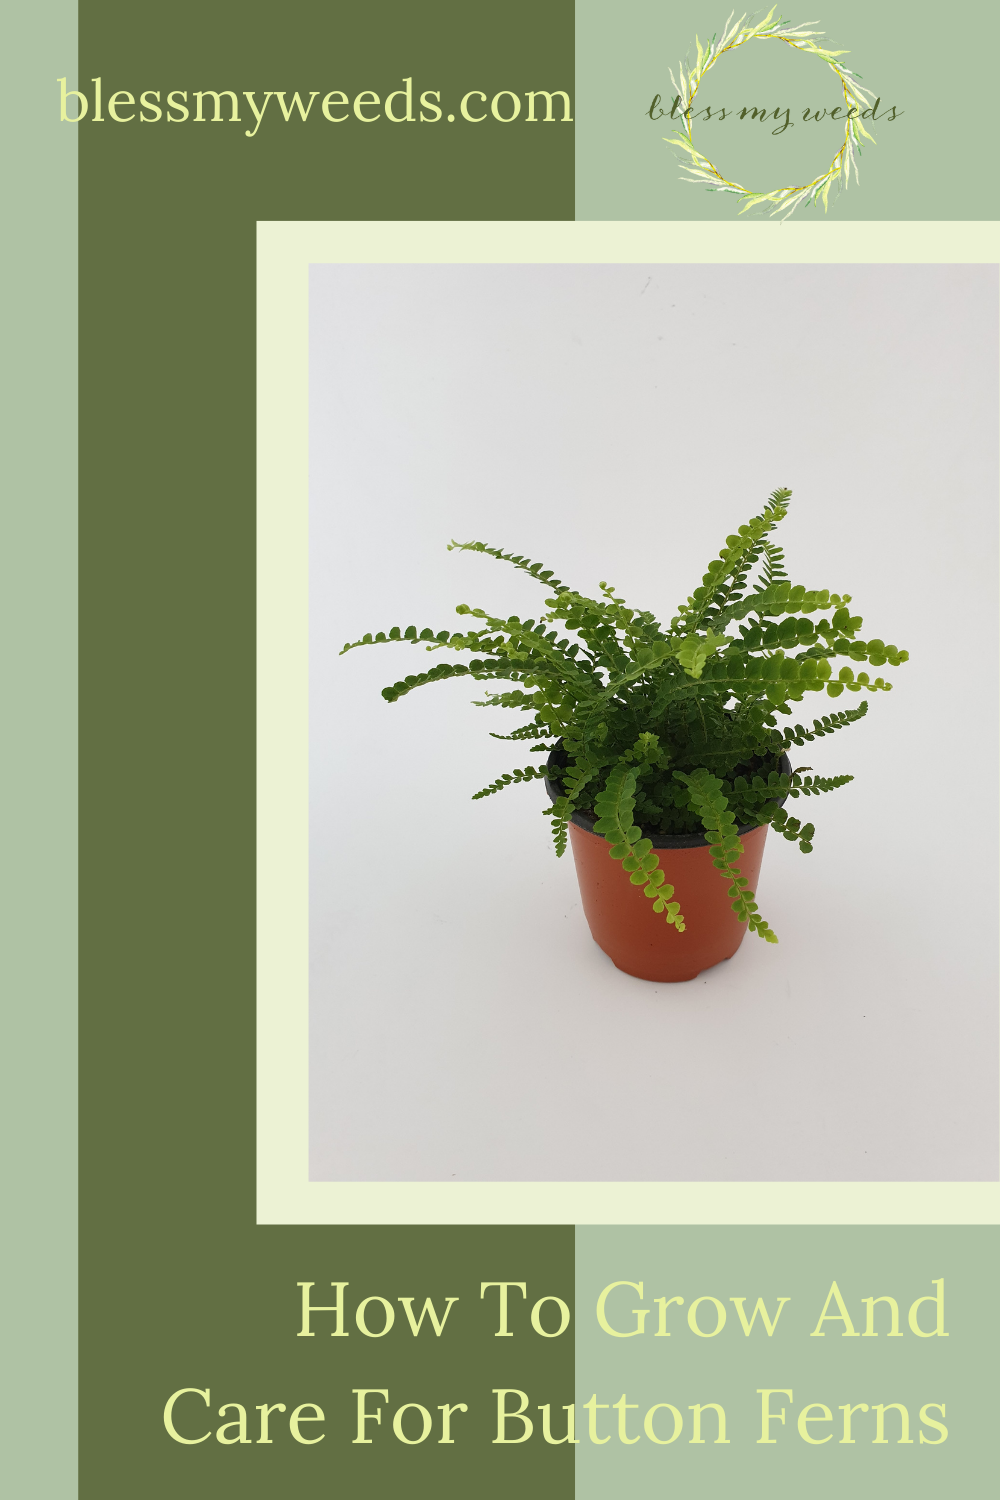 Blessmyweeds.com makes keeping healthy plants easy for anyone! Learn what to grow and how to care for it. Find out all you need to know to grow button ferns in your home!